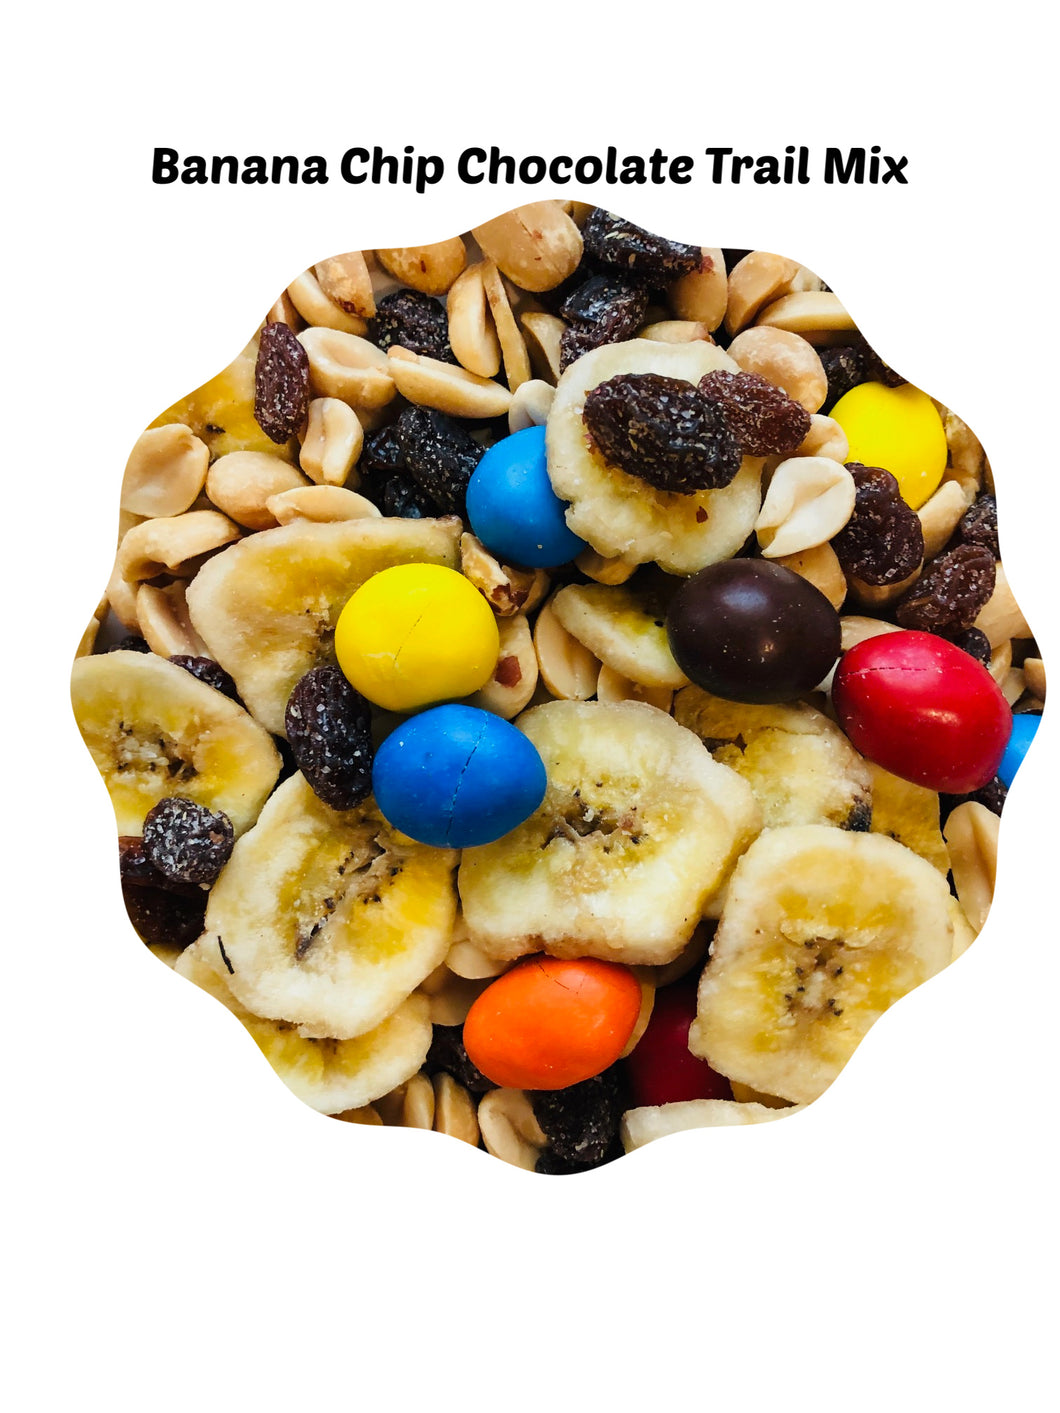 Banana Chip Chocolate Trail Mix, A Set of 4 - 10 oz bags.